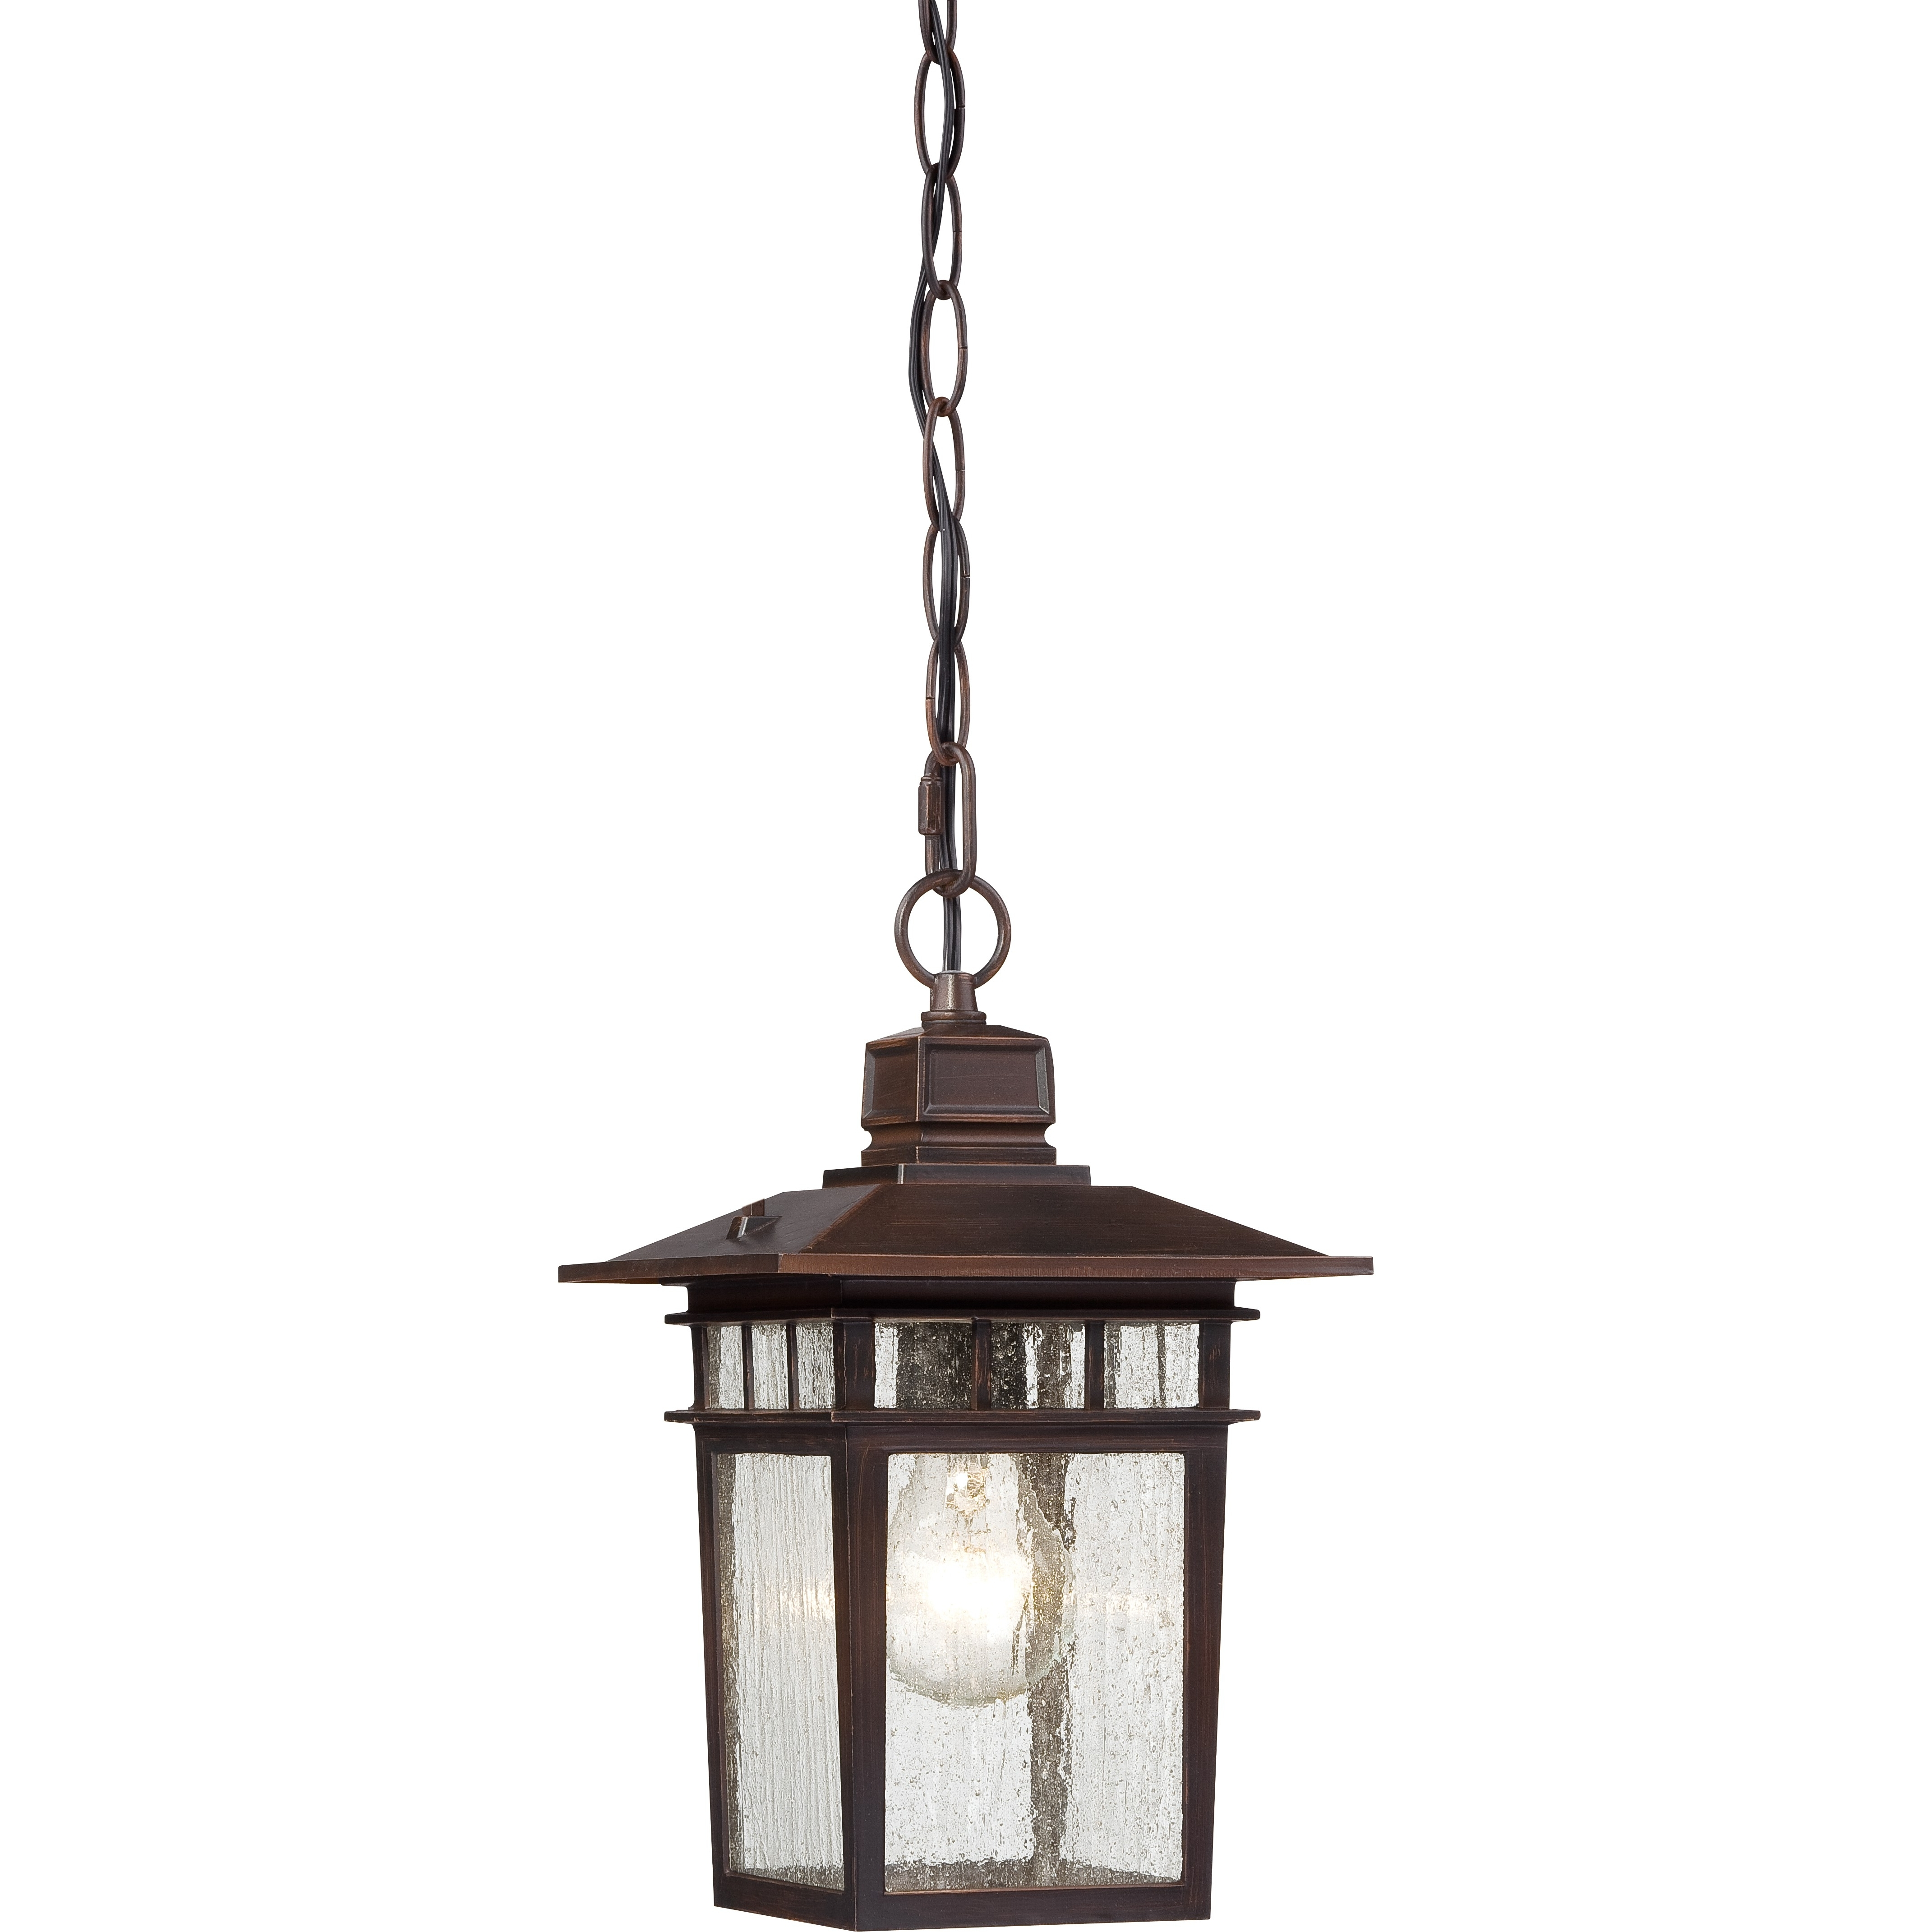 Cove Neck With Rustic Outdoor Hanging Lights (View 17 of 20)